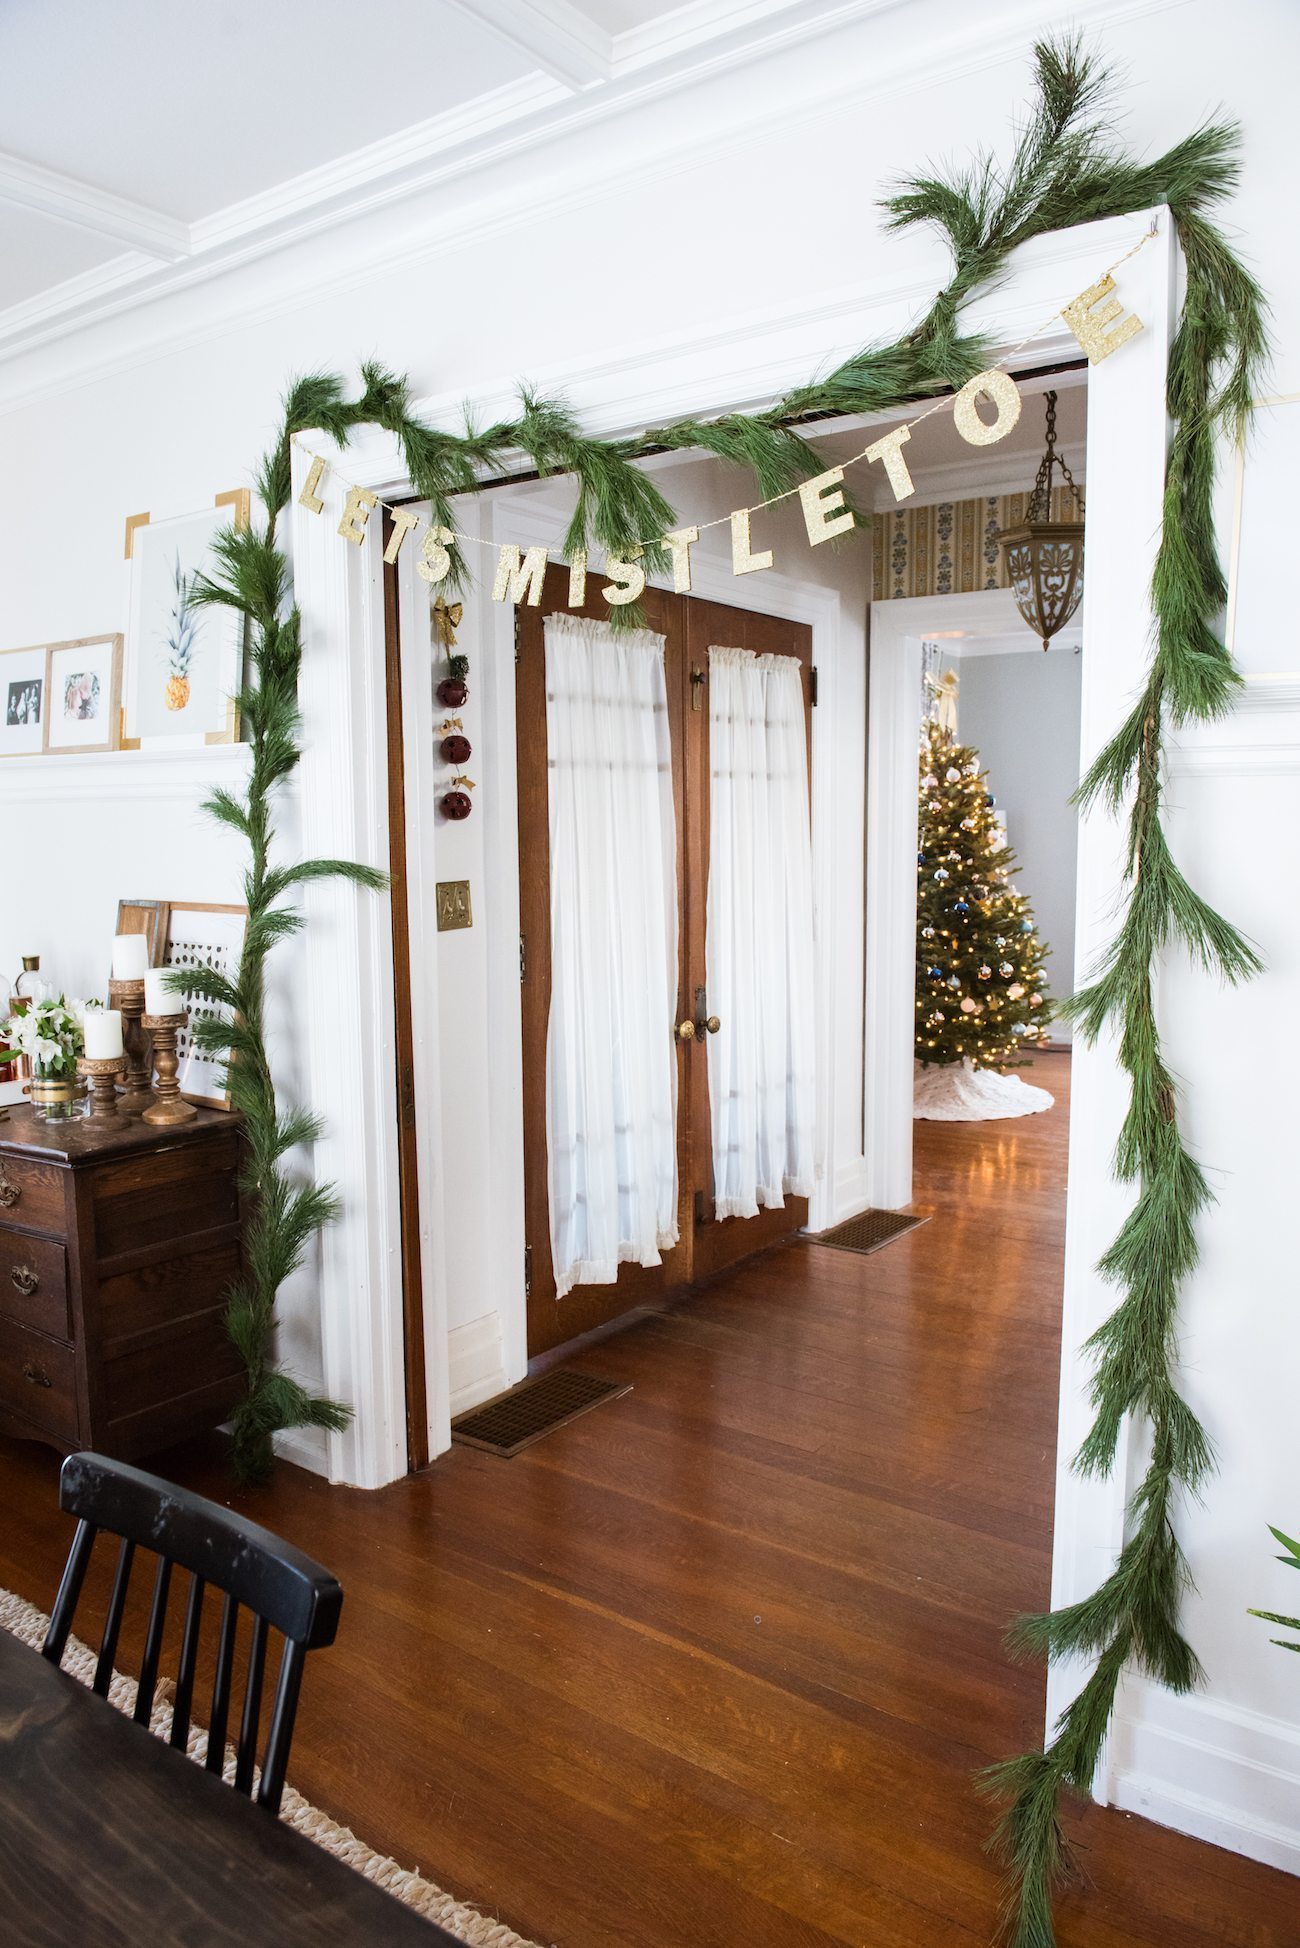 Dining Room Christmas Decor | Decorating for the holidays from @cydconverse